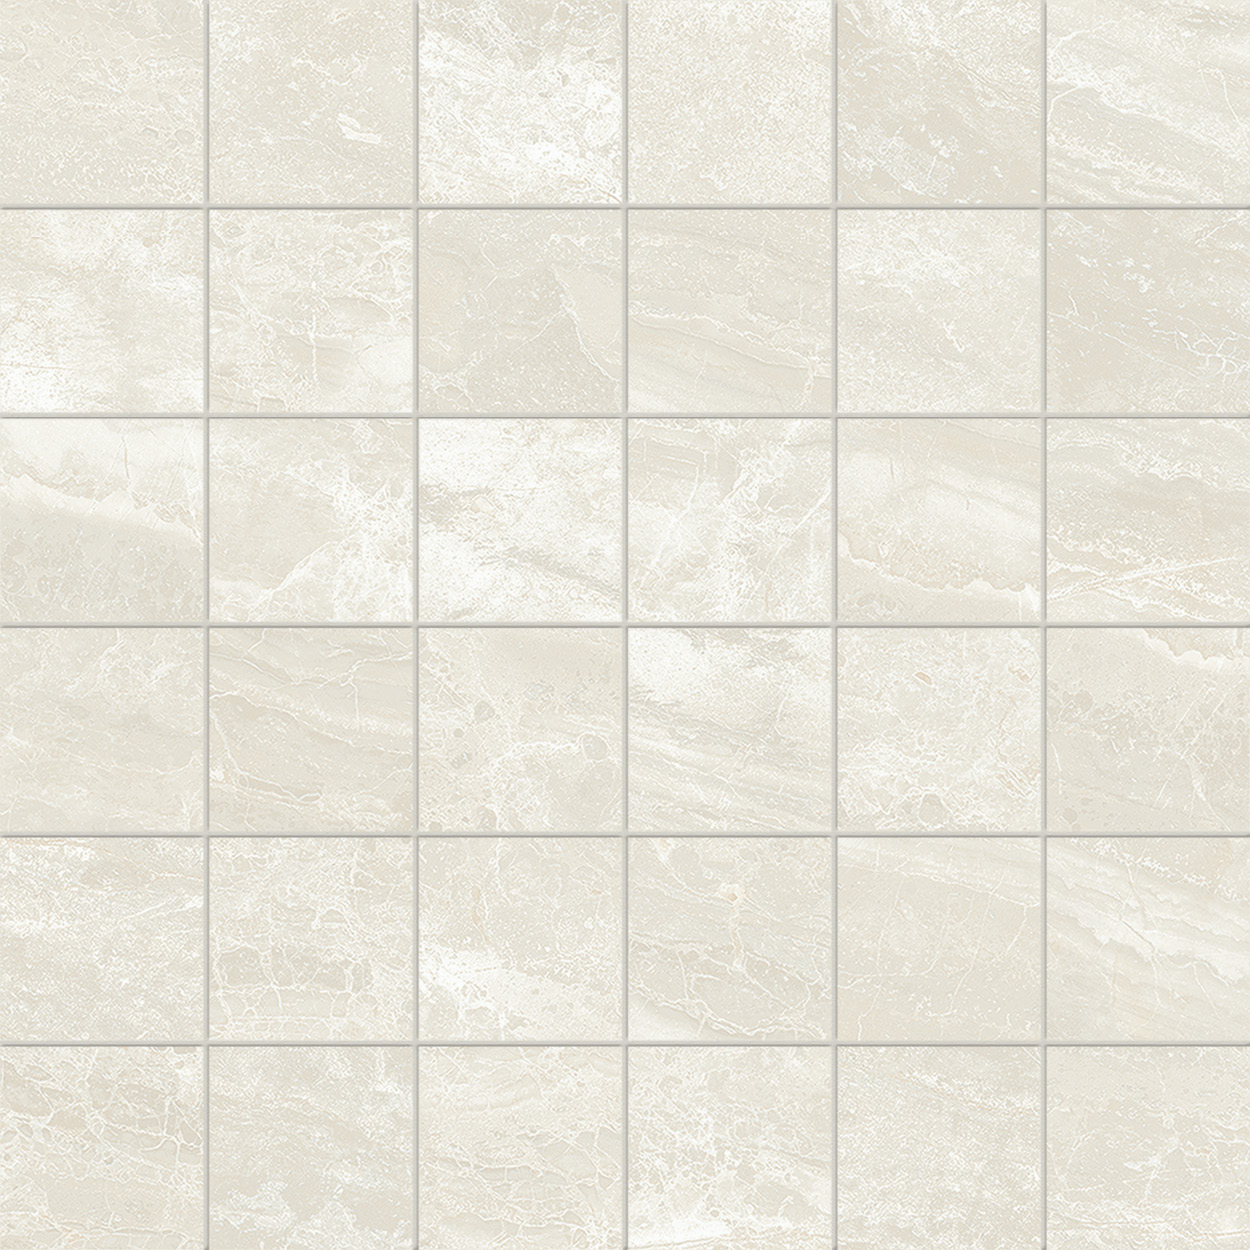 2 x 2 Cosmic White POLISHED porcelain mosaic